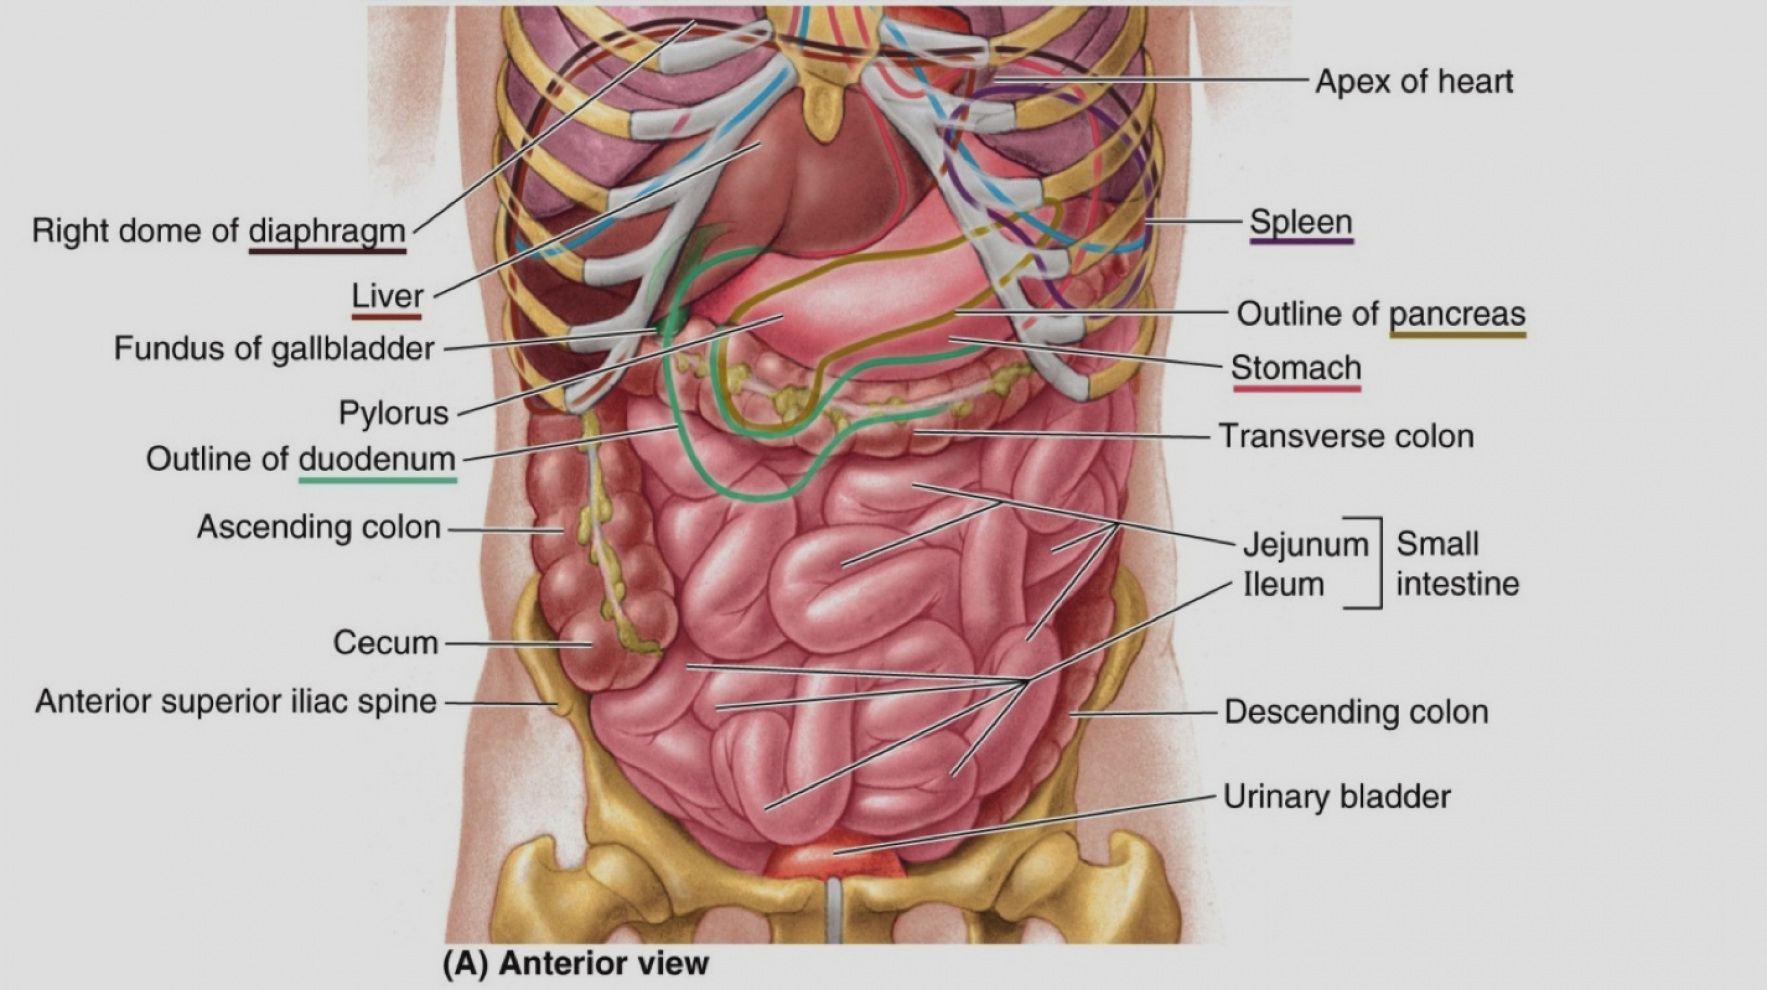 Major Organs In The Abdominal Cavity Elegant Of Human Abdominal Cavity Anatomy Internal Organs